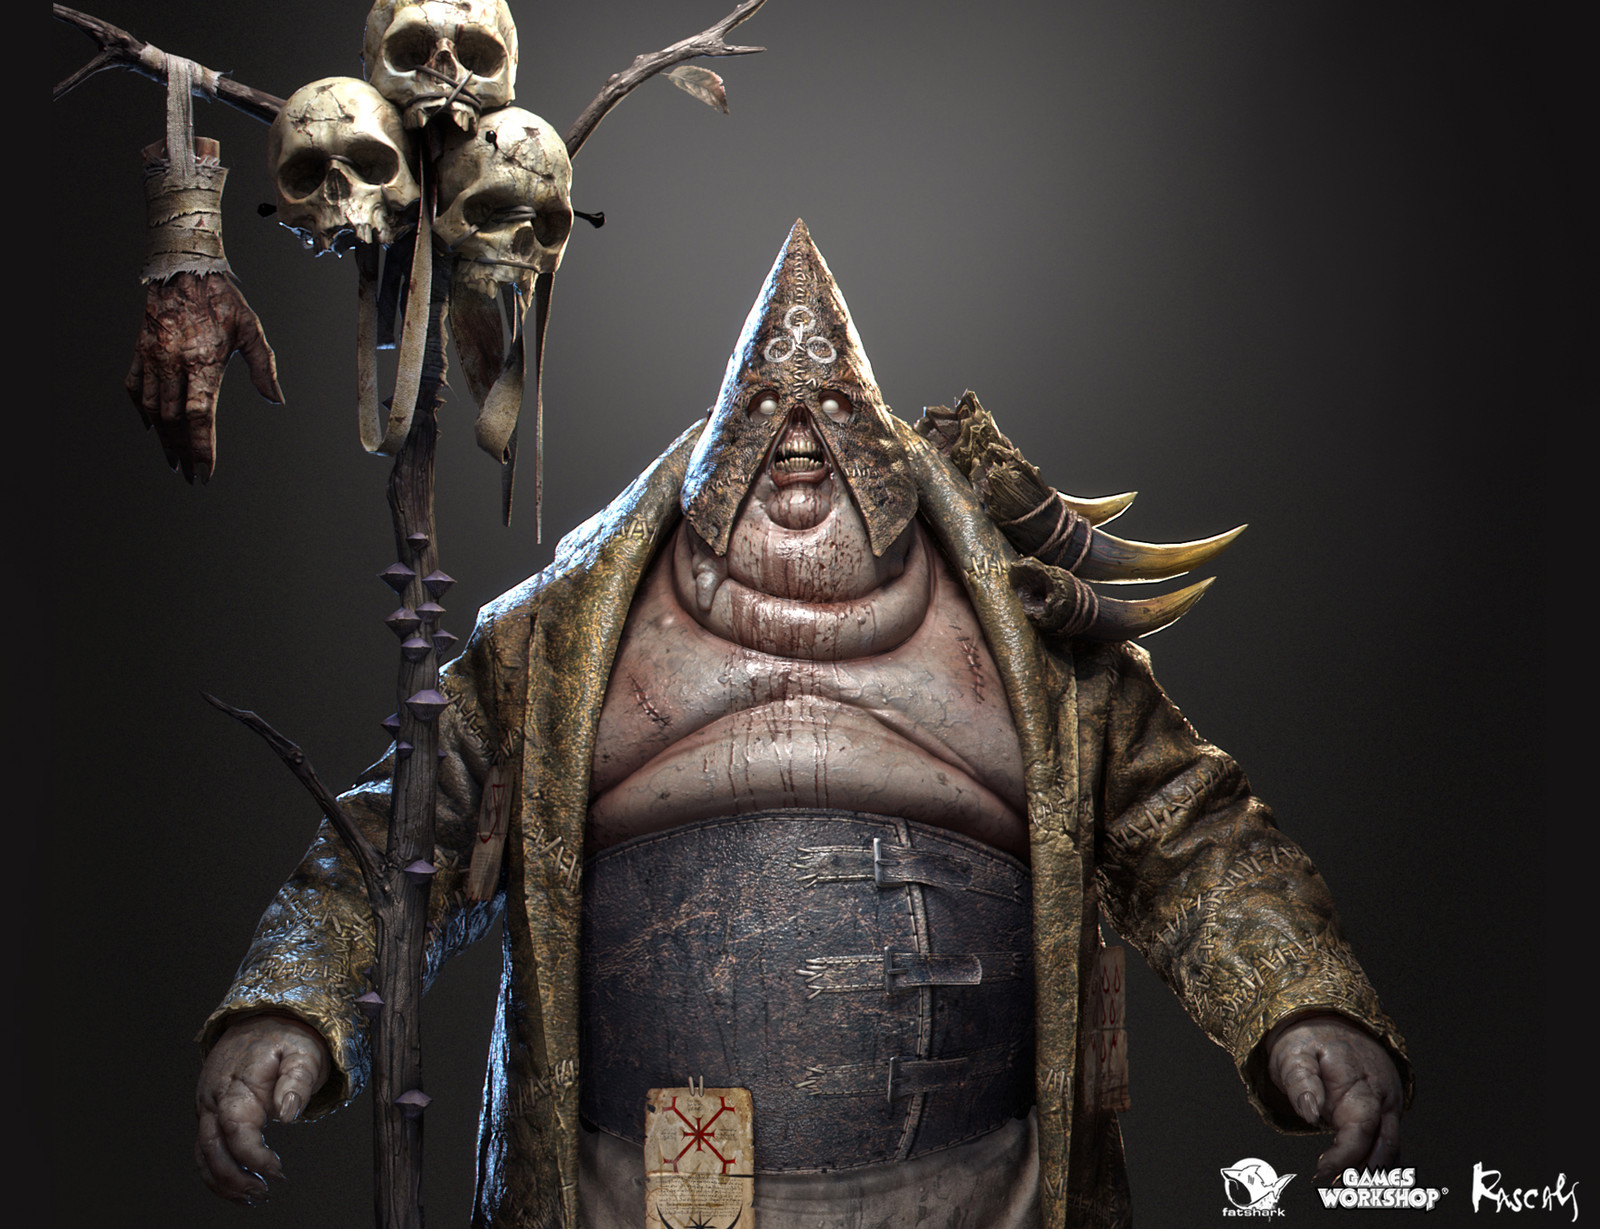 Among the NPC and enemy characters Rascals created for Warhammer Vermintide II, Chaos Sorcerer stands among our favourites.